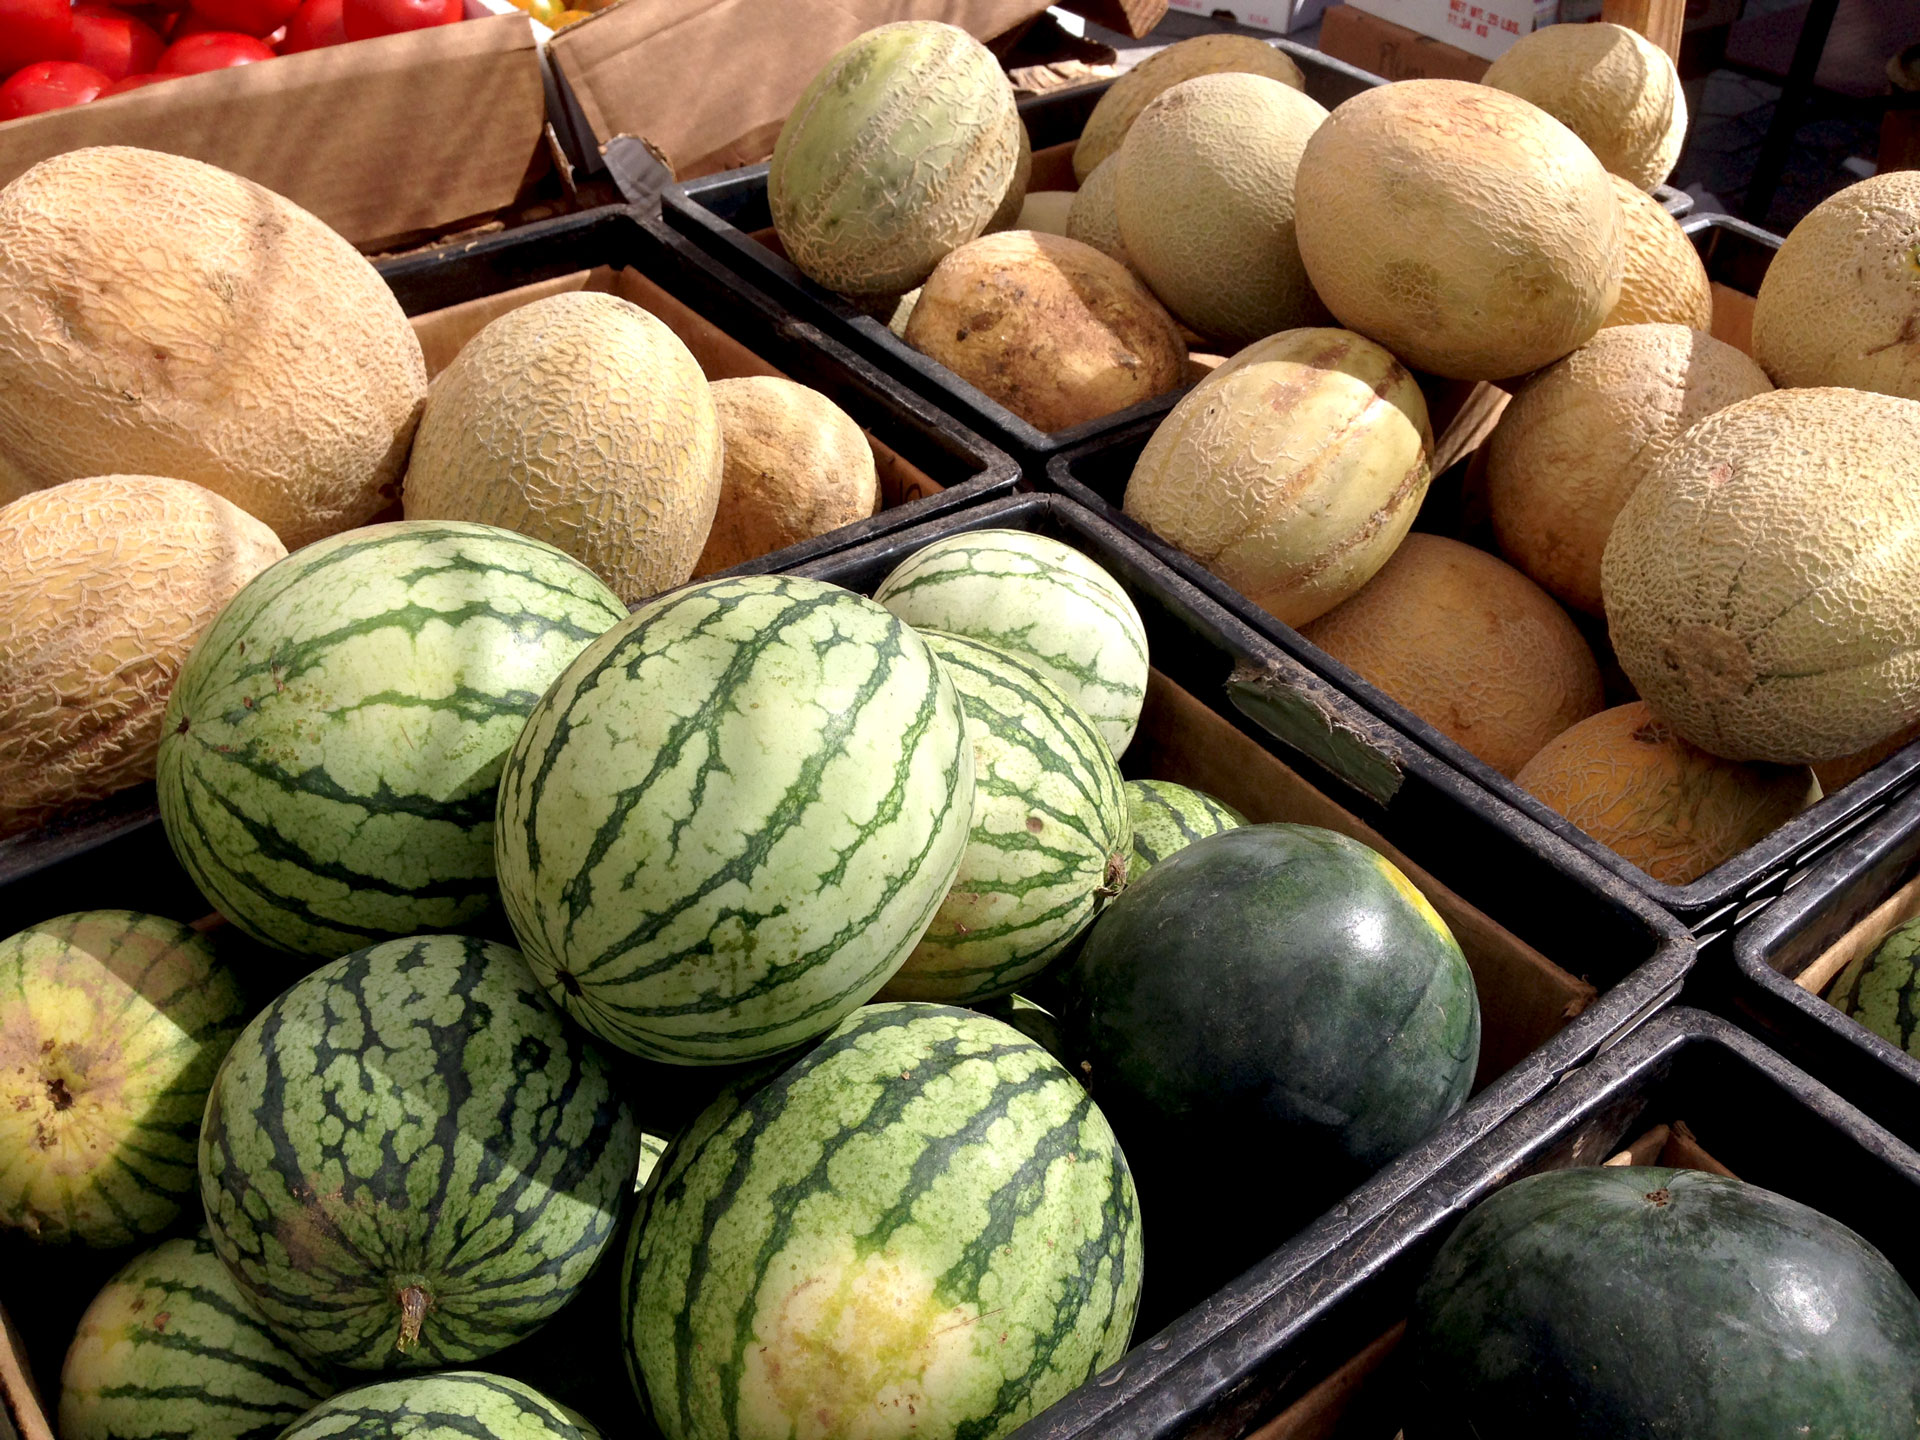 Melons at farmers market